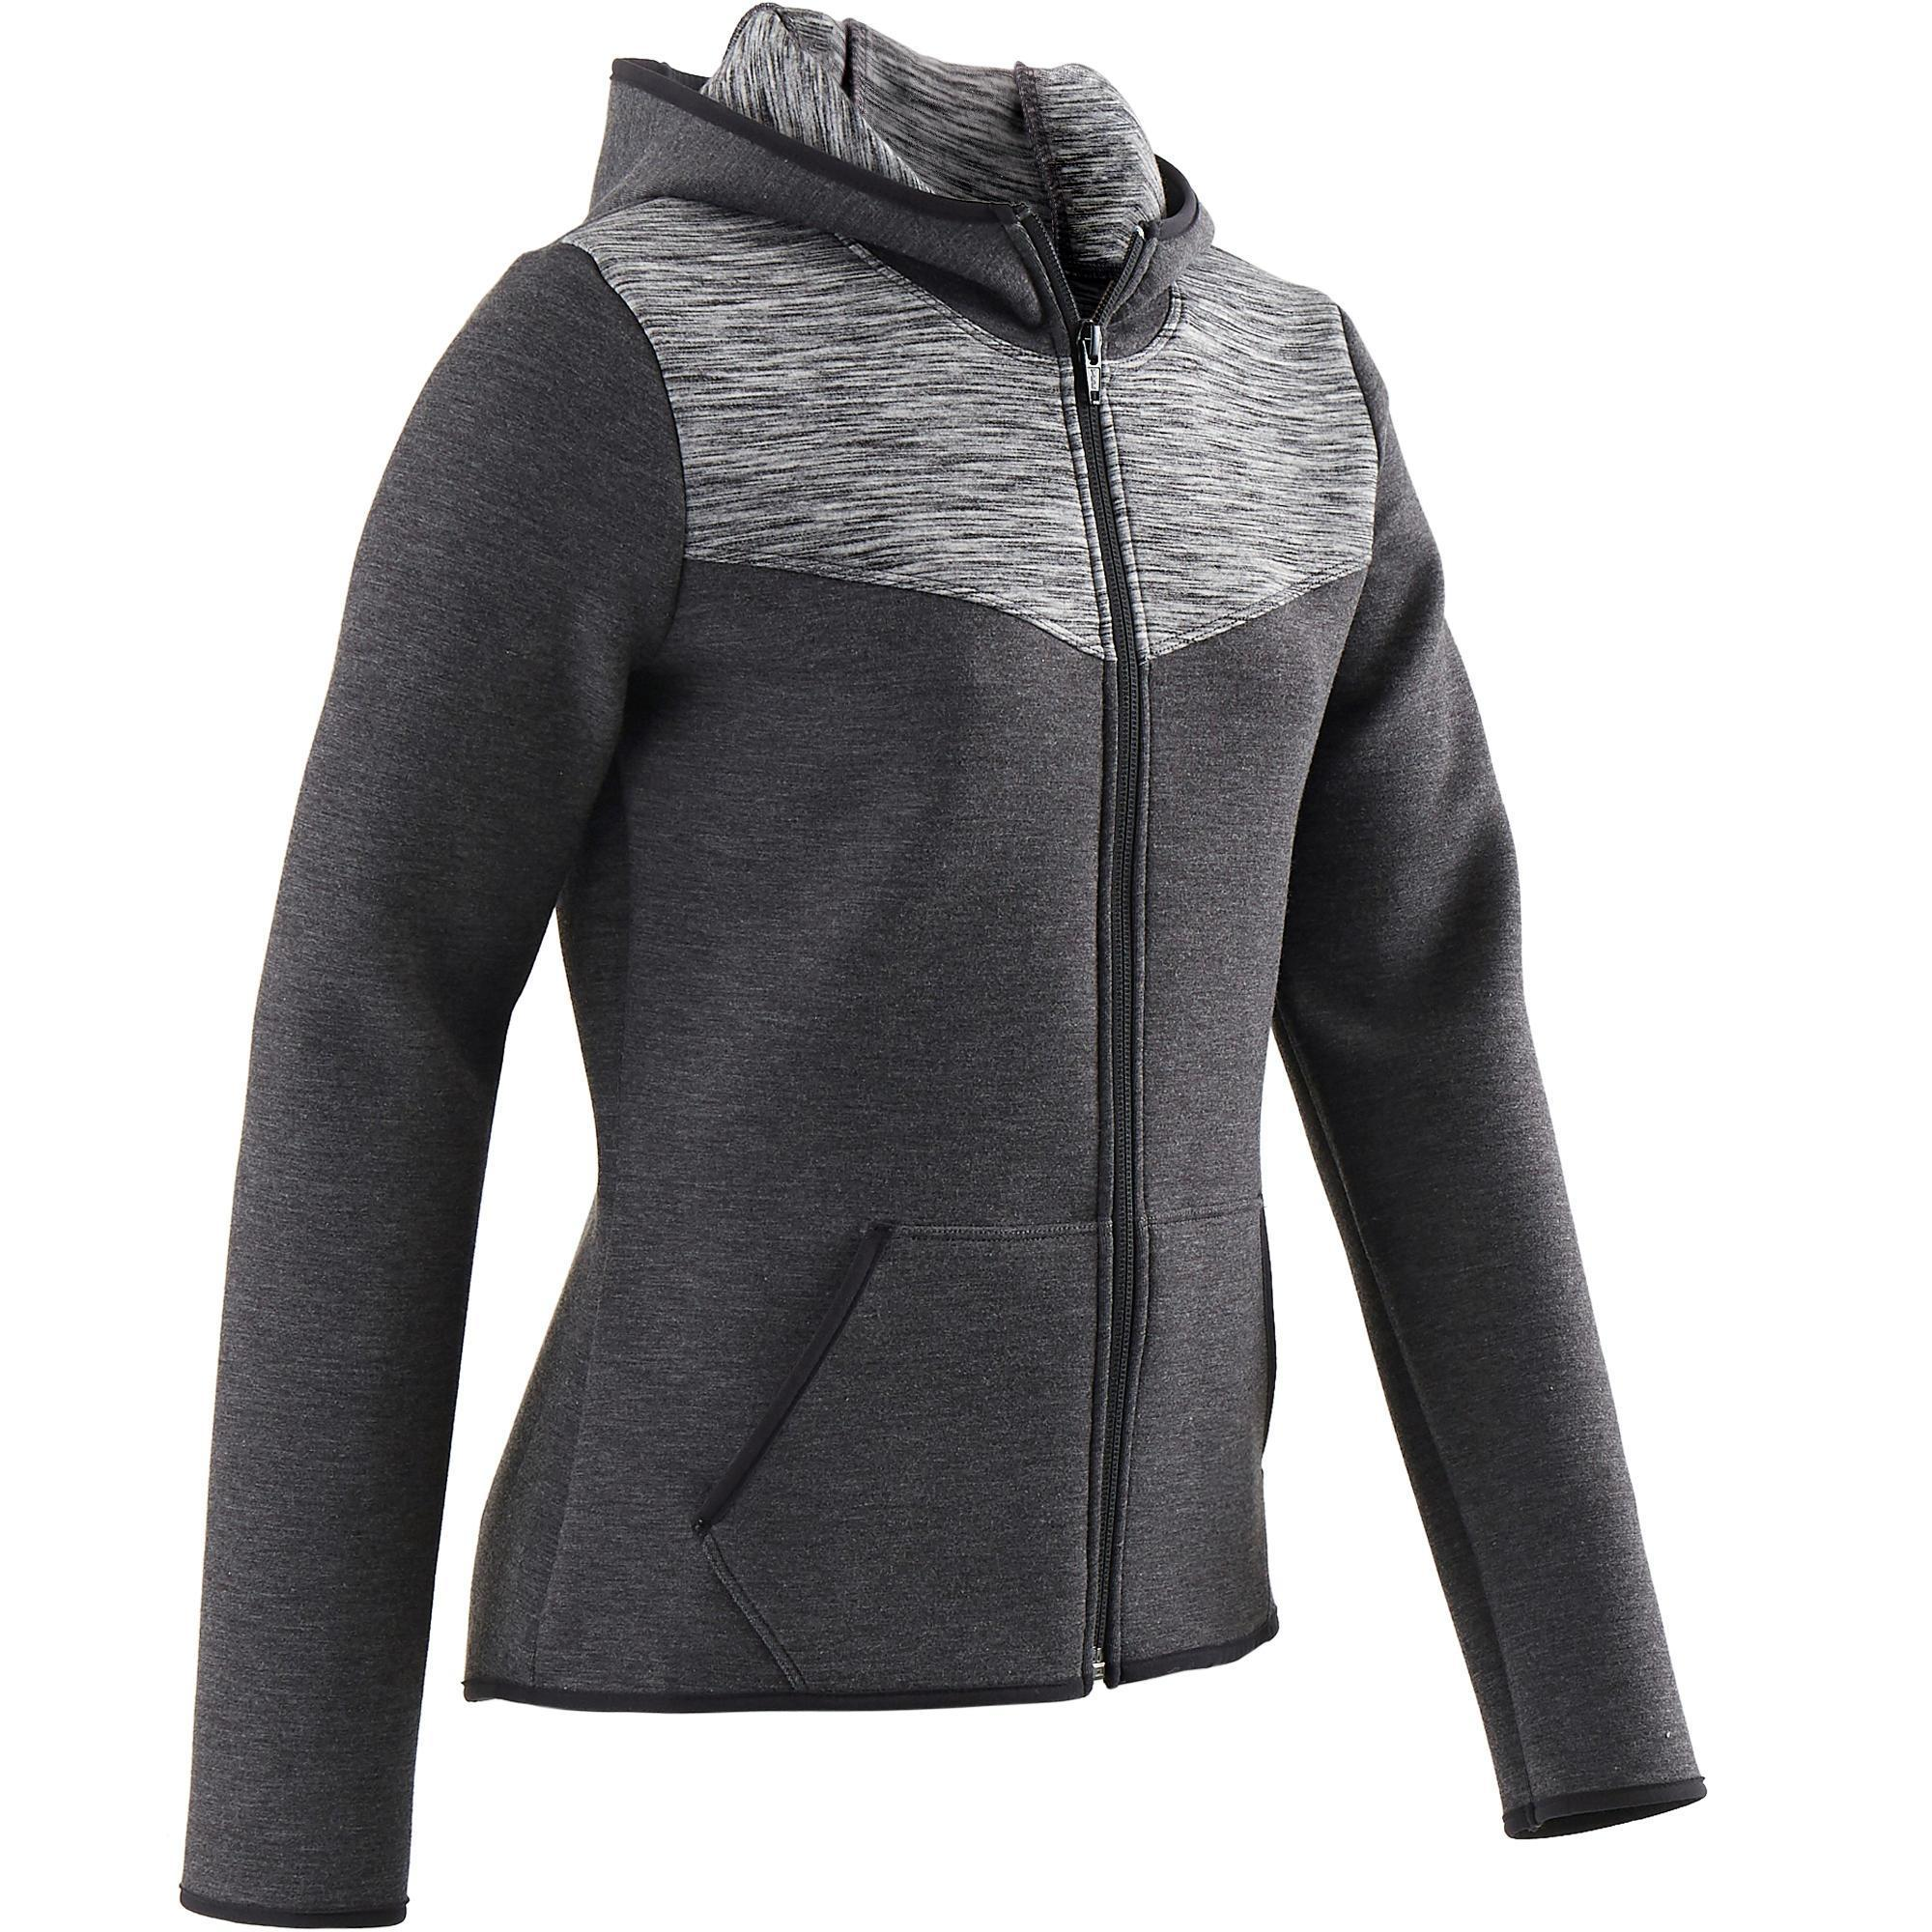 Kinder Kapuzenjacke Spacer 500 Gym Kinder schwarz | 03608419175530